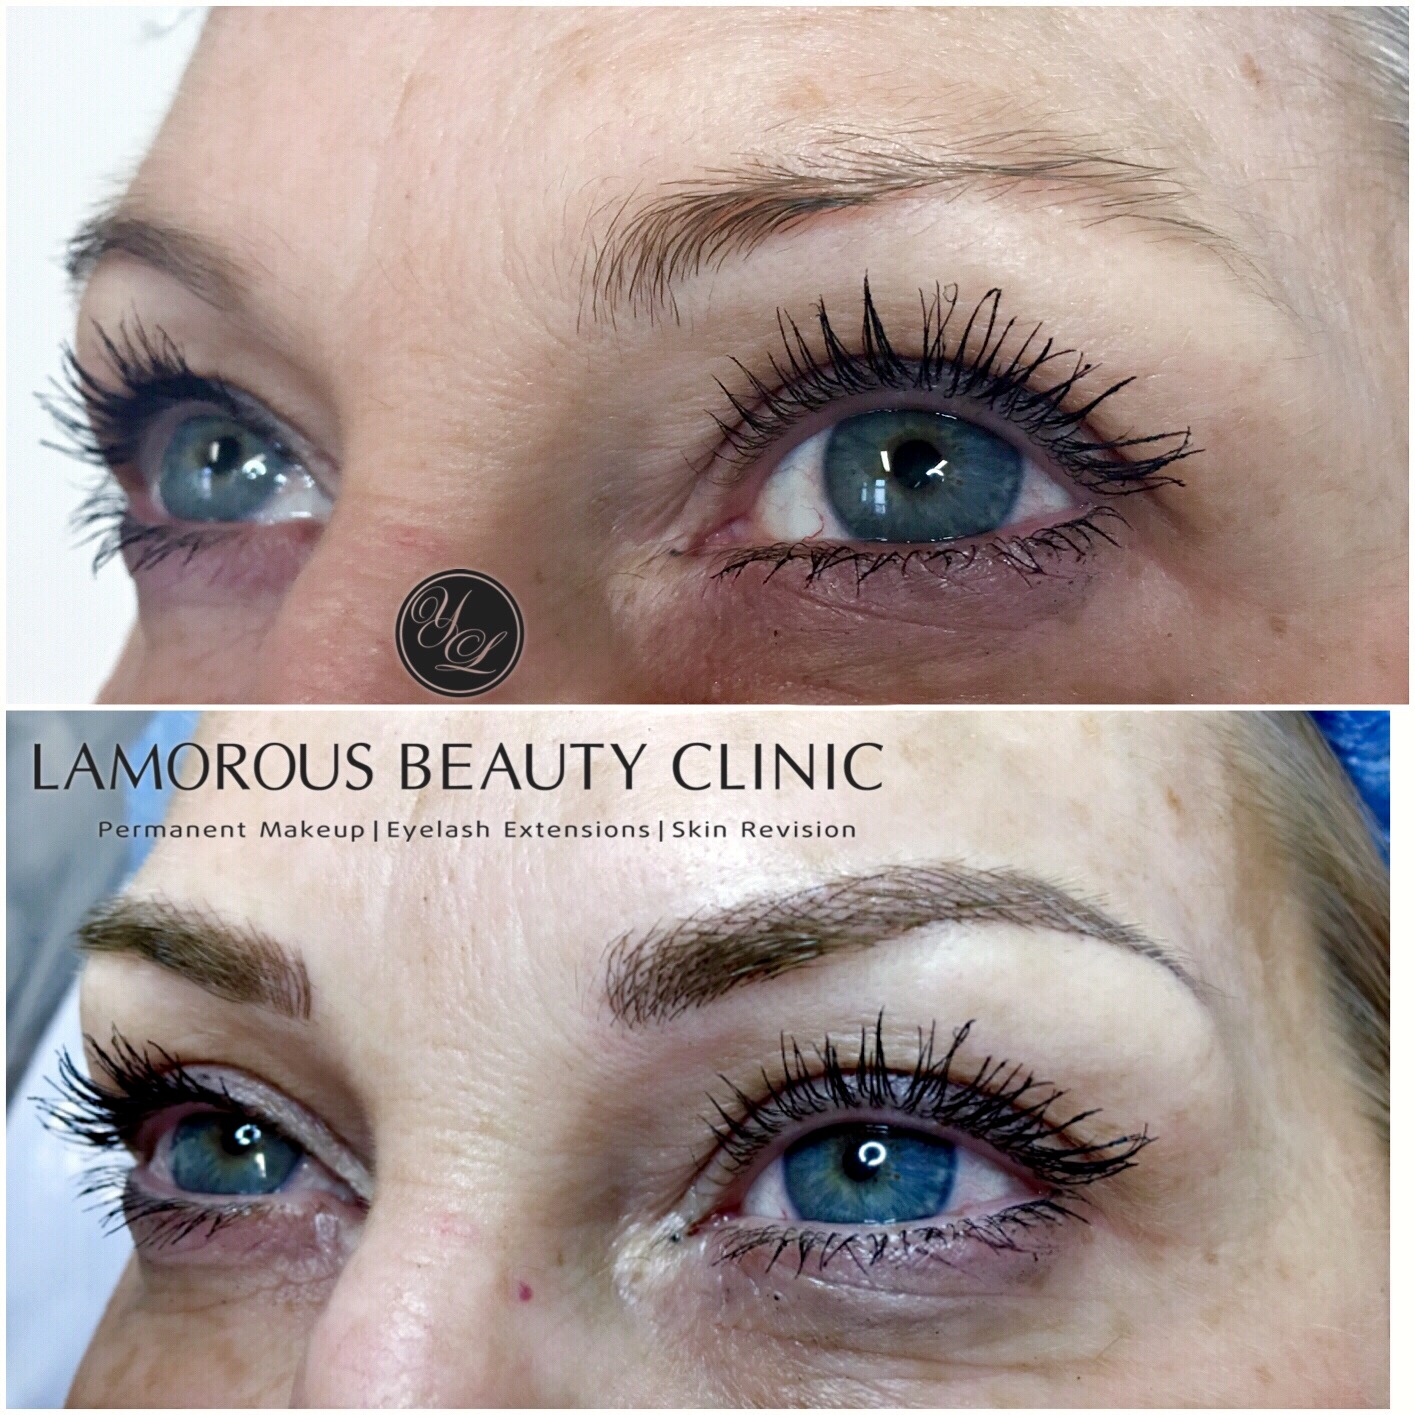 Lamorous Beauty Clinic Microblading Eyebrow Permanent Makeup ...